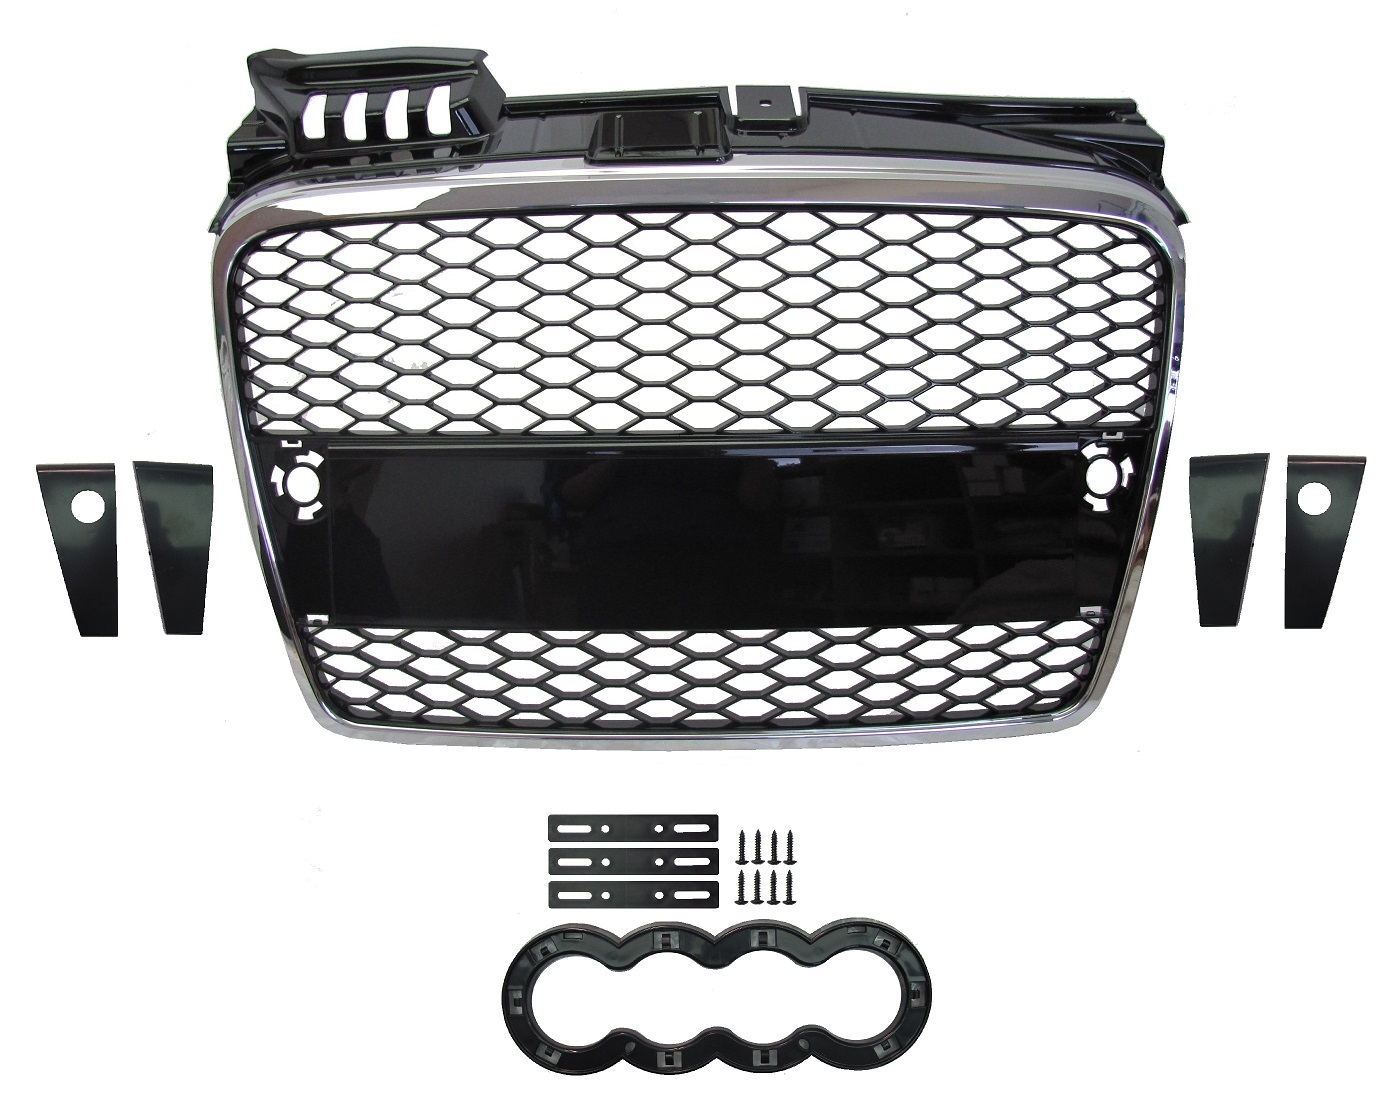 chrome black front grille rs4 style audi a4 honeycomb mesh 2005 8 rs4 b7 ebay. Black Bedroom Furniture Sets. Home Design Ideas